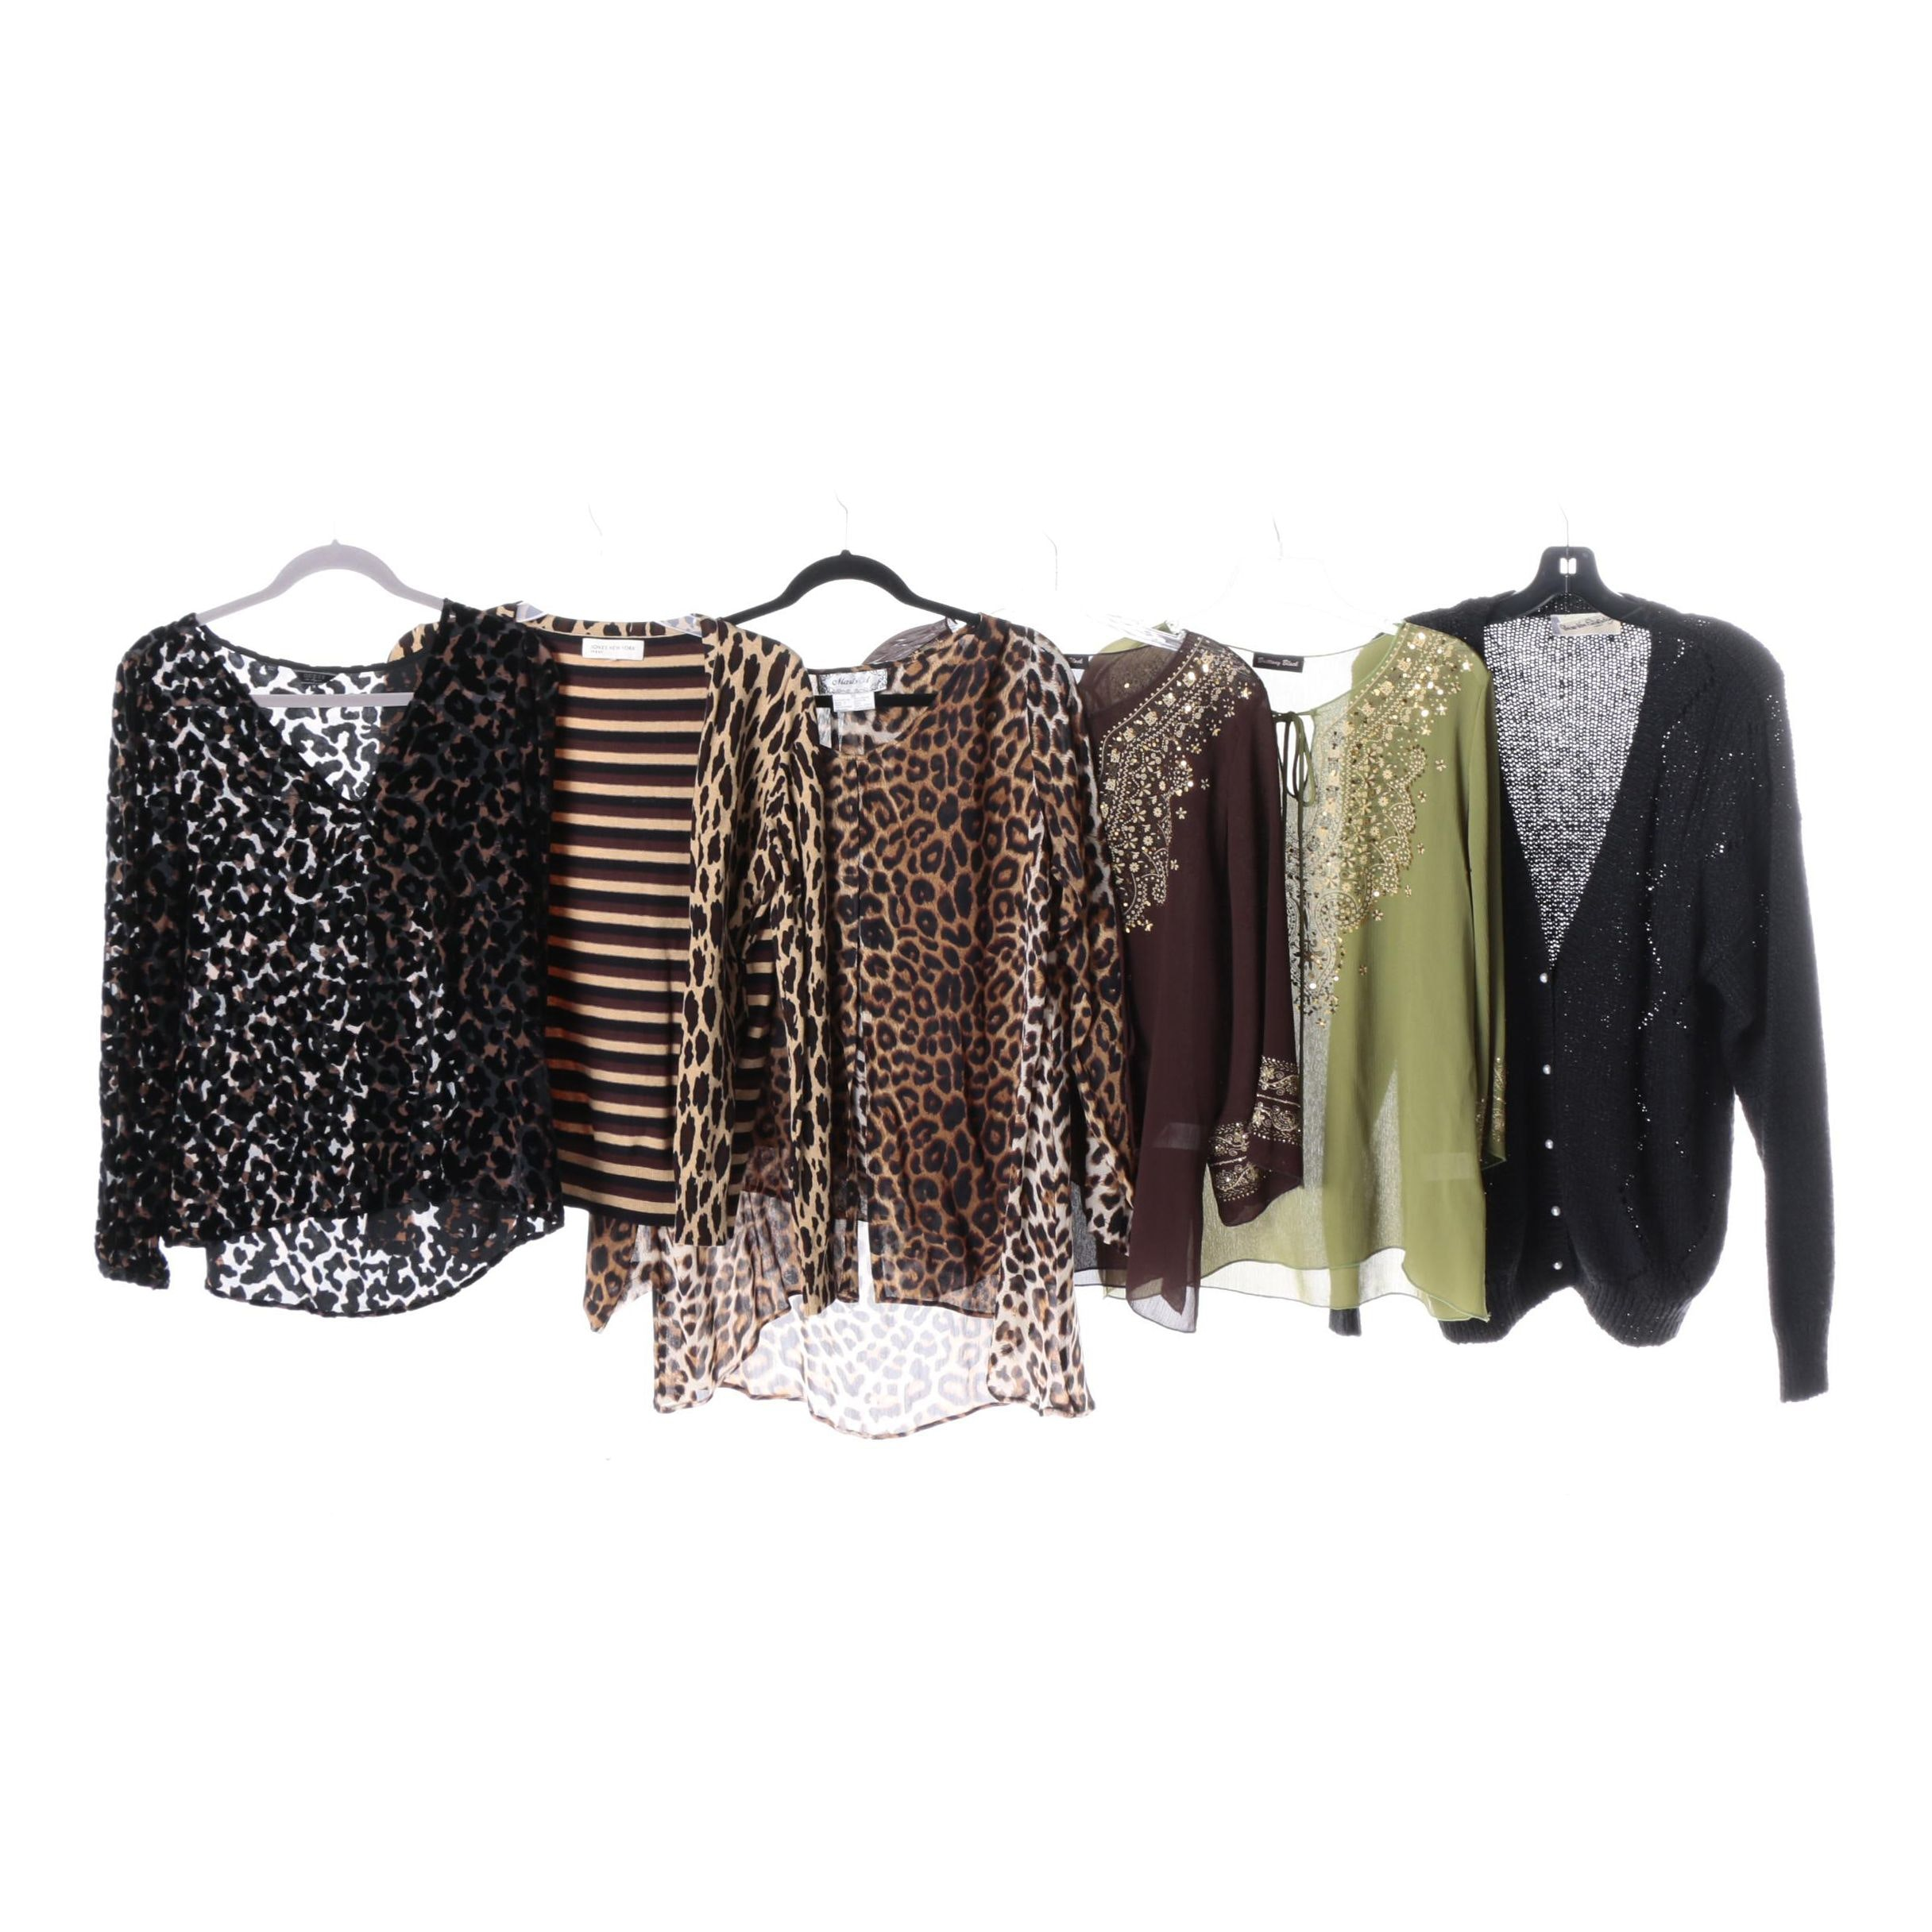 Women's Blouses and Cardigans Including Vintage Diane von Furstenberg